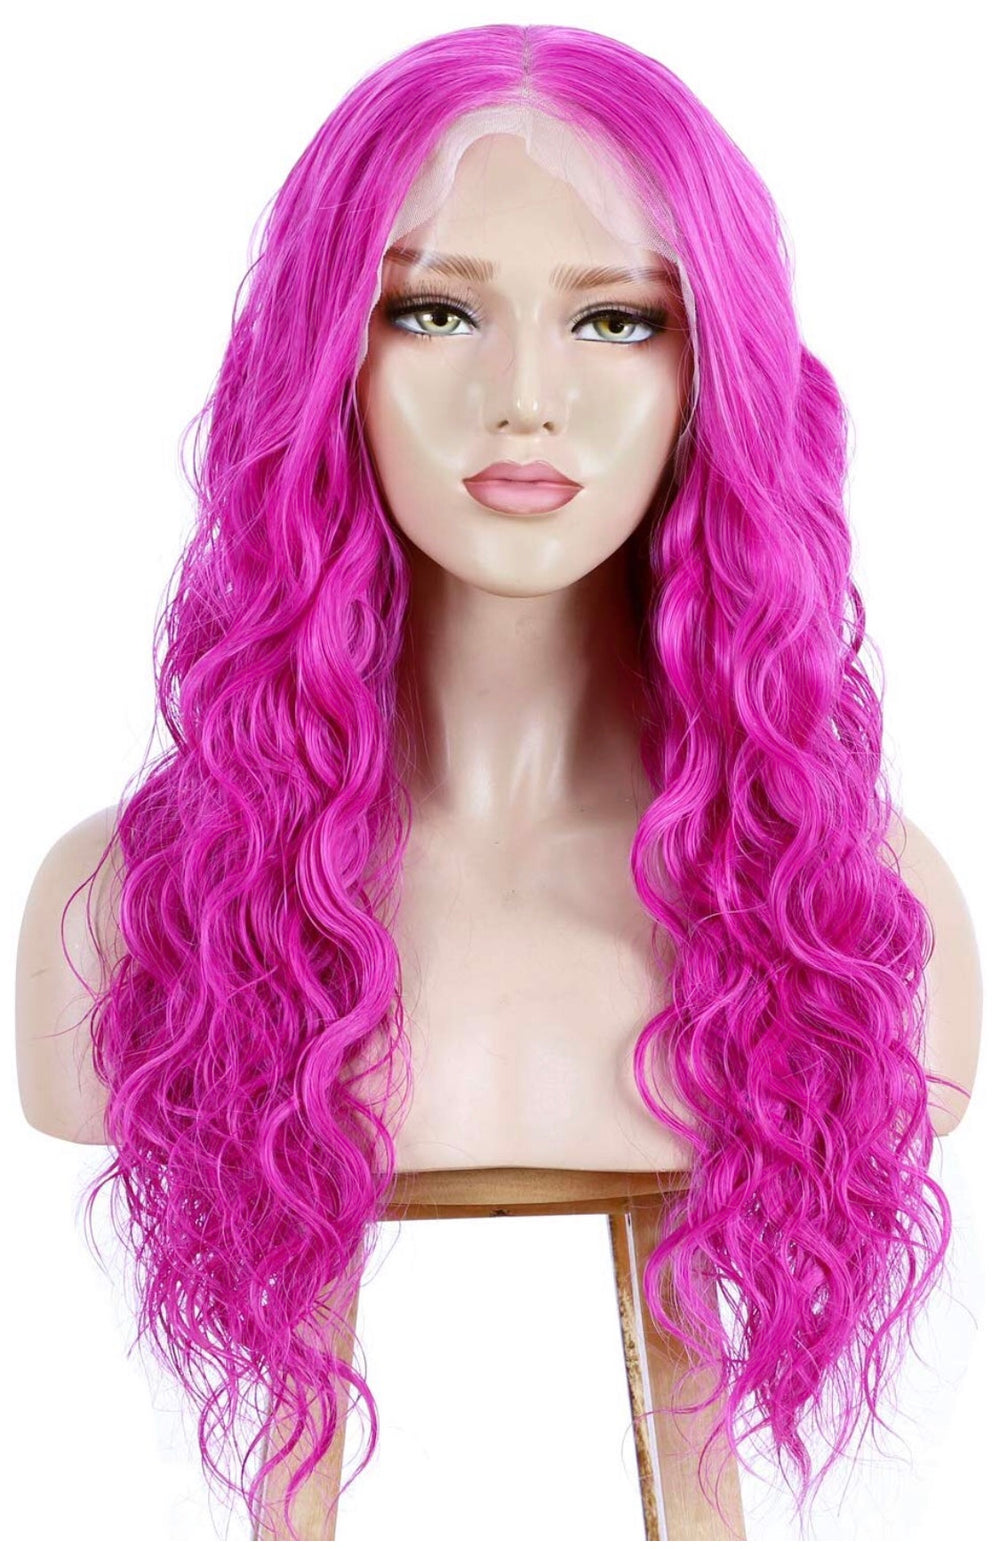 SYN Collection | Synthetic Hair Lace Unit | Pink Wavy 22""